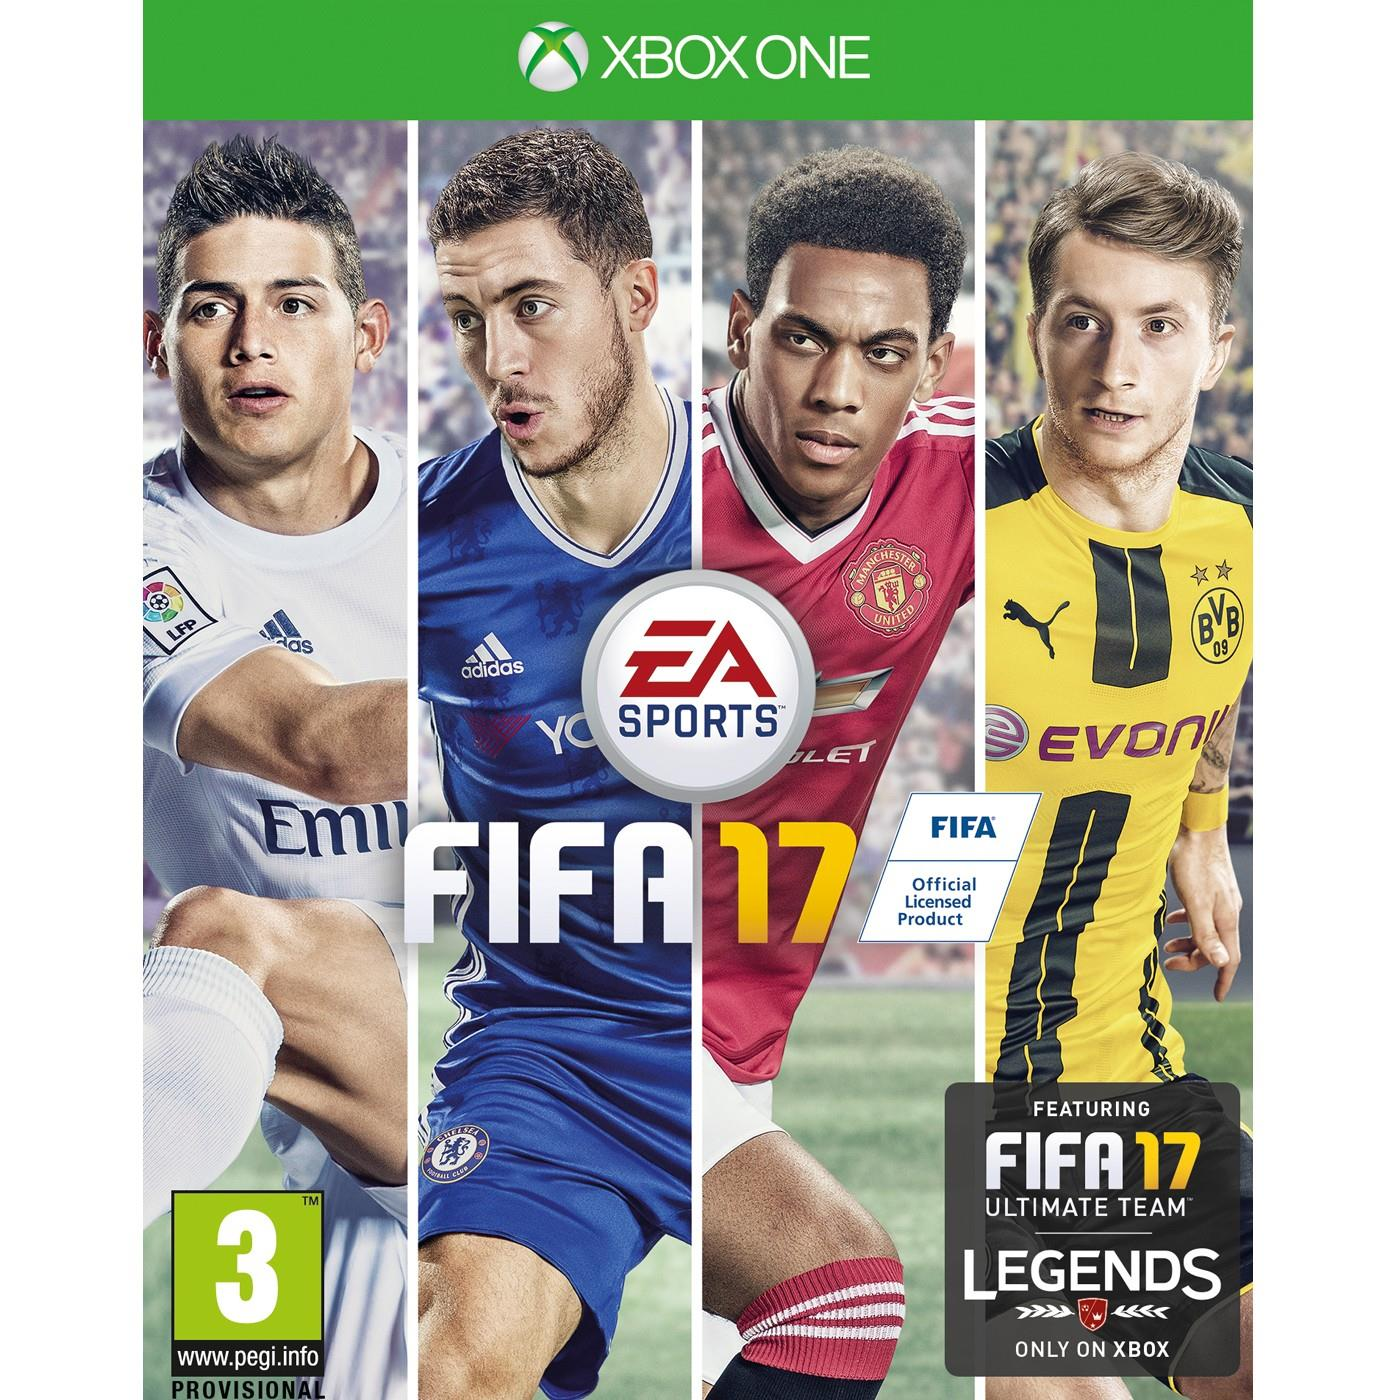 ELECTRONIC ARTS GAME XBOX ONE FIFA 2017